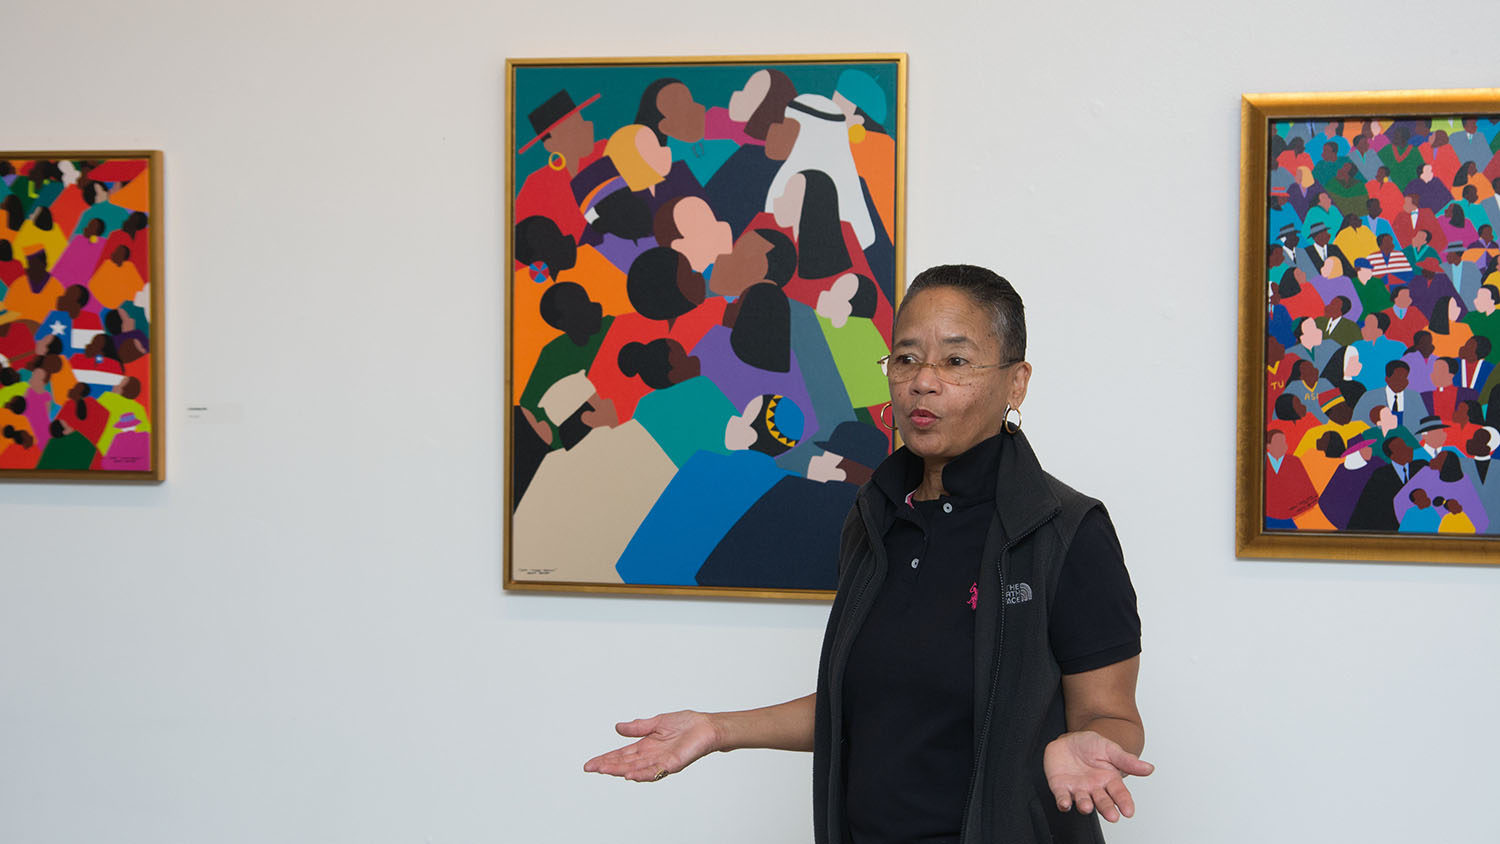 Cynthia Saint James at NC State AACC Gallery